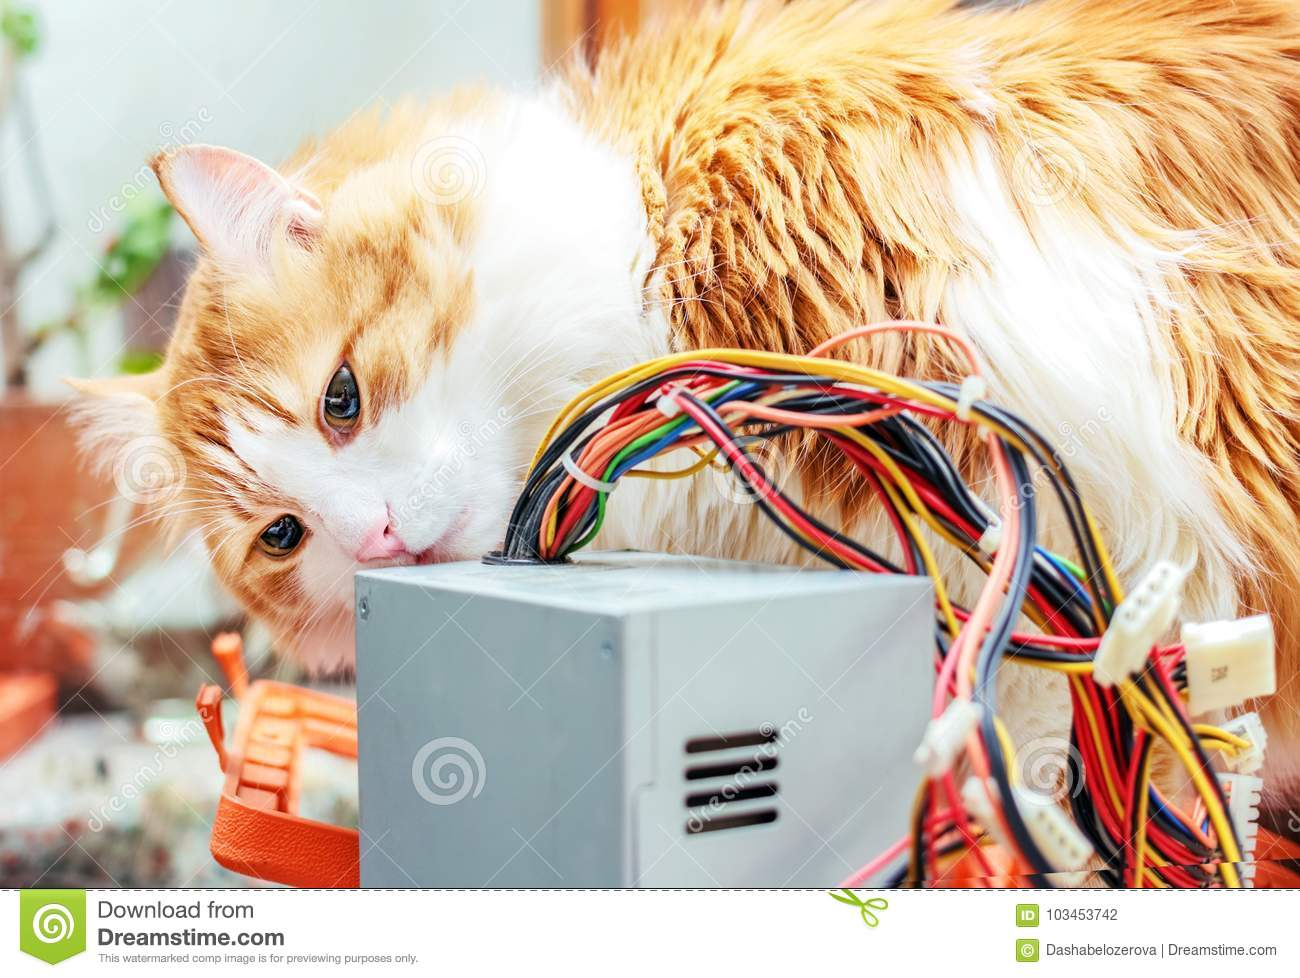 Red cat and computer wires stock photo. Image of communication ...